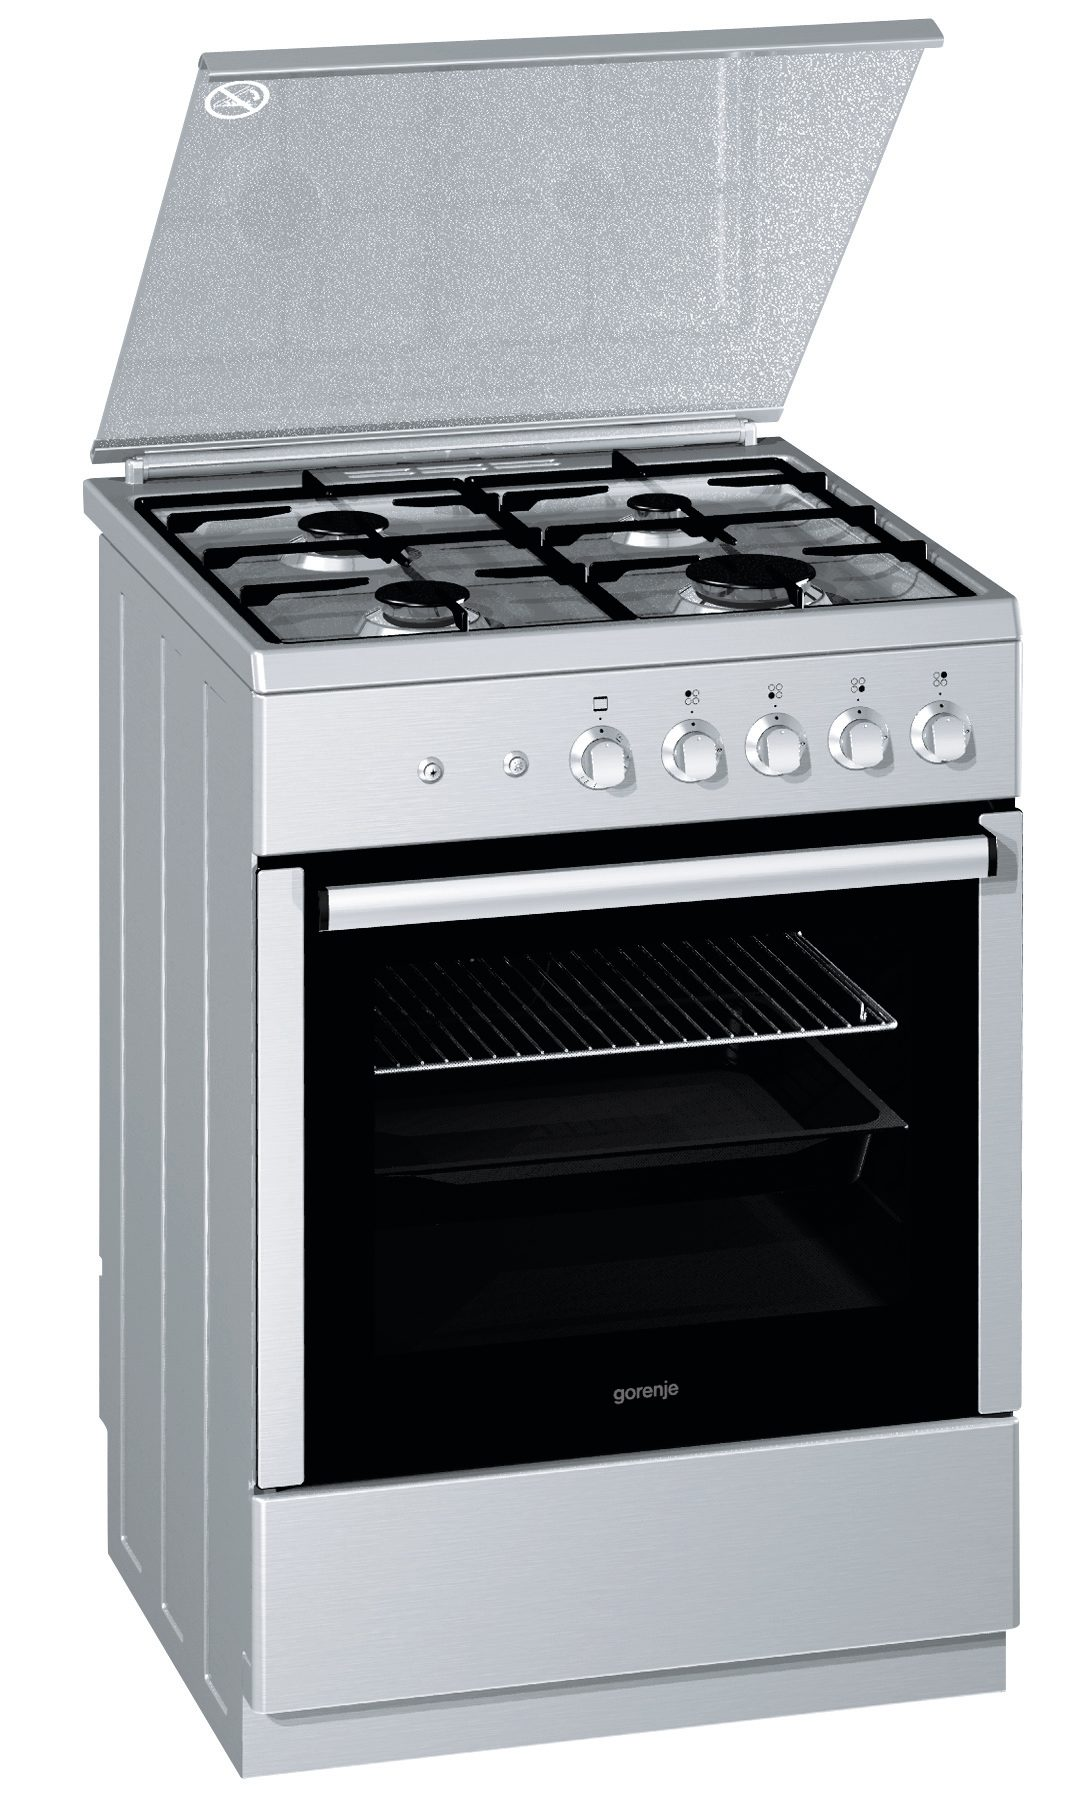 Freestanding All Gas Cooker G61123ax Gorenje